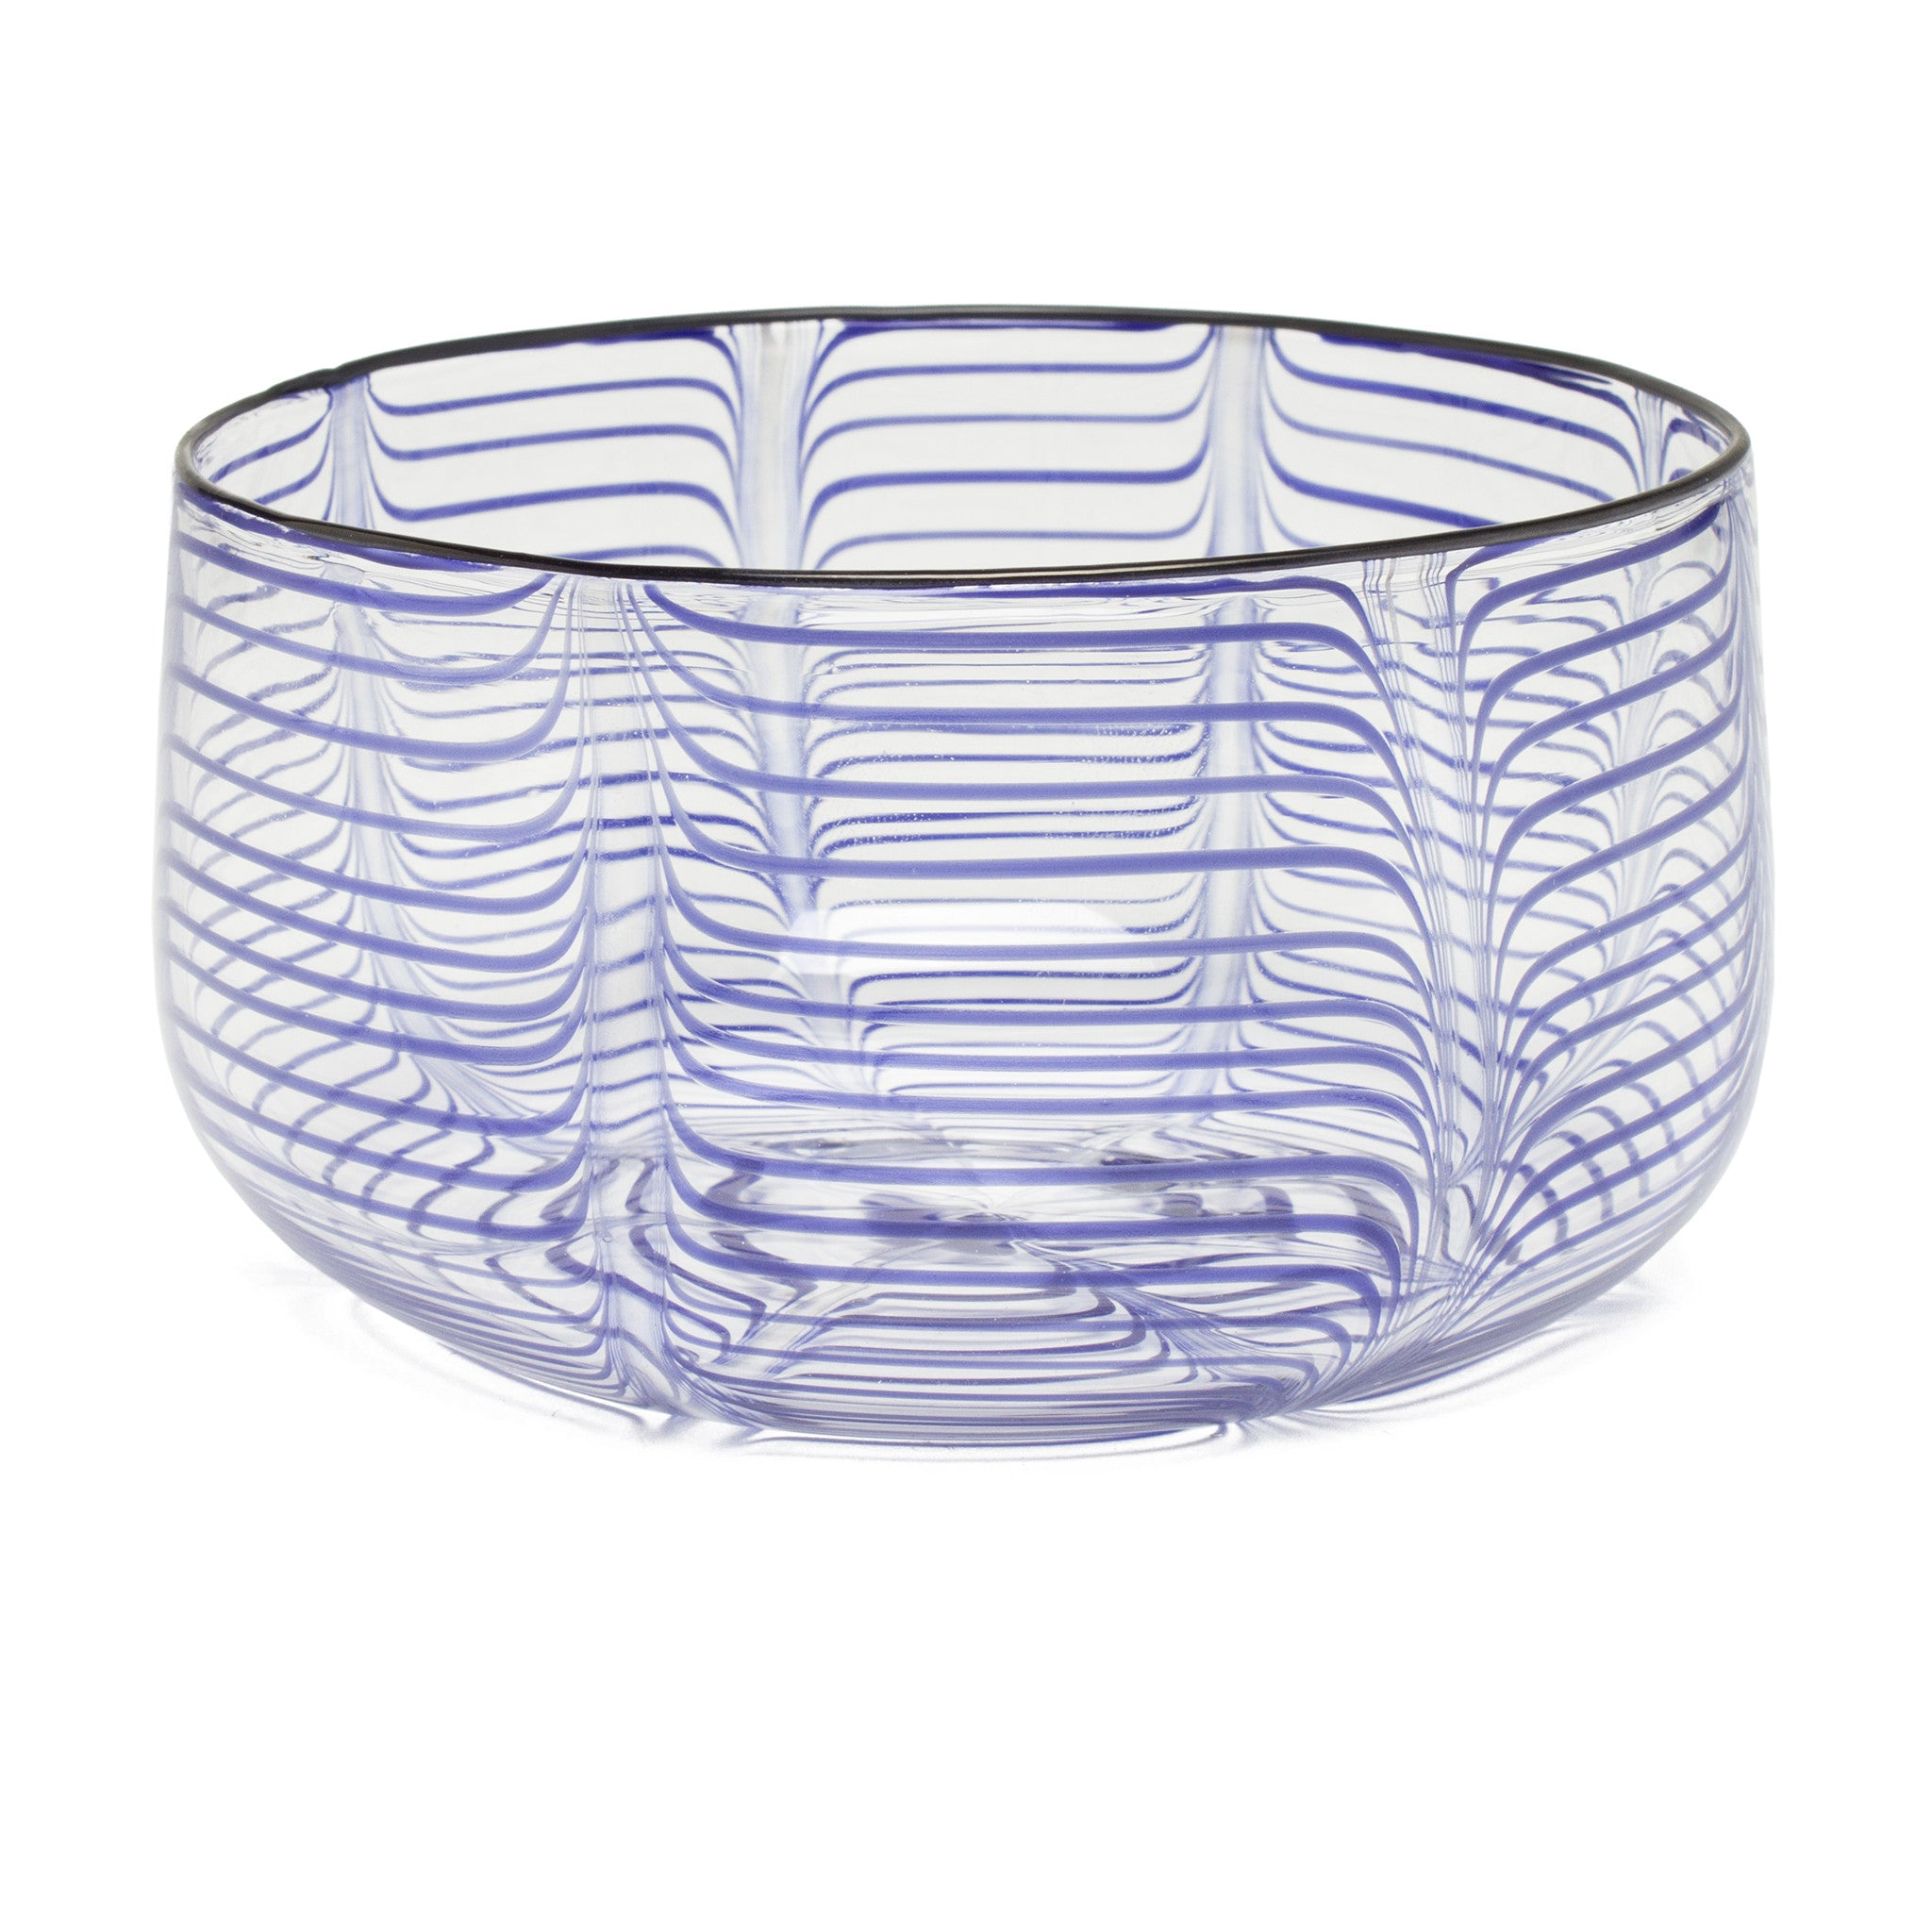 decorative bowl by laurence brabant ditions large blue - Decorative Bowl